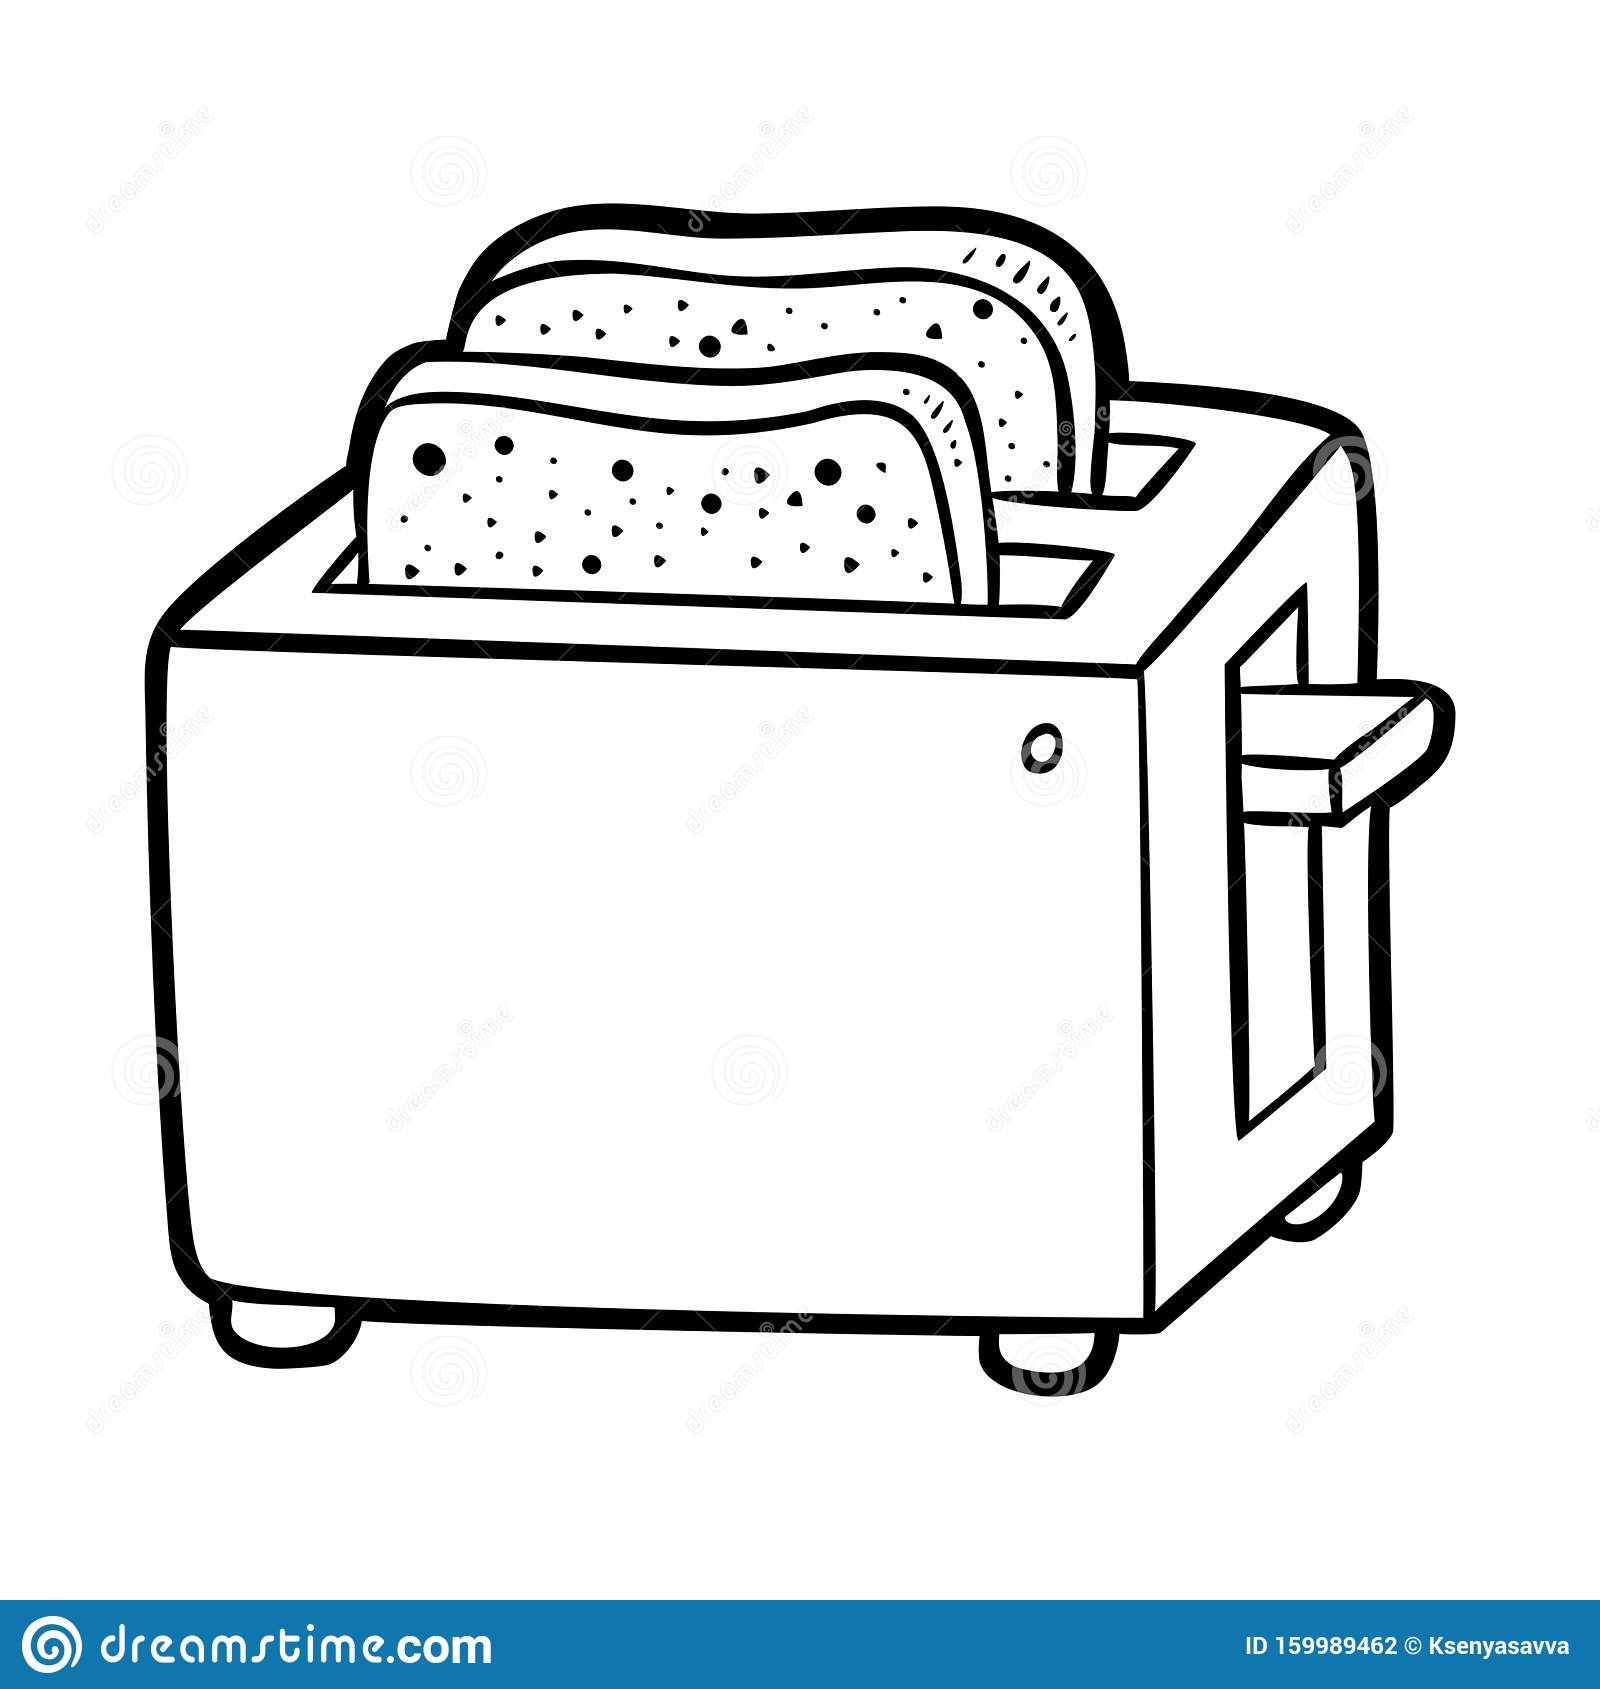 Coloring Book Two Slice Toaster Black And White Cartoon